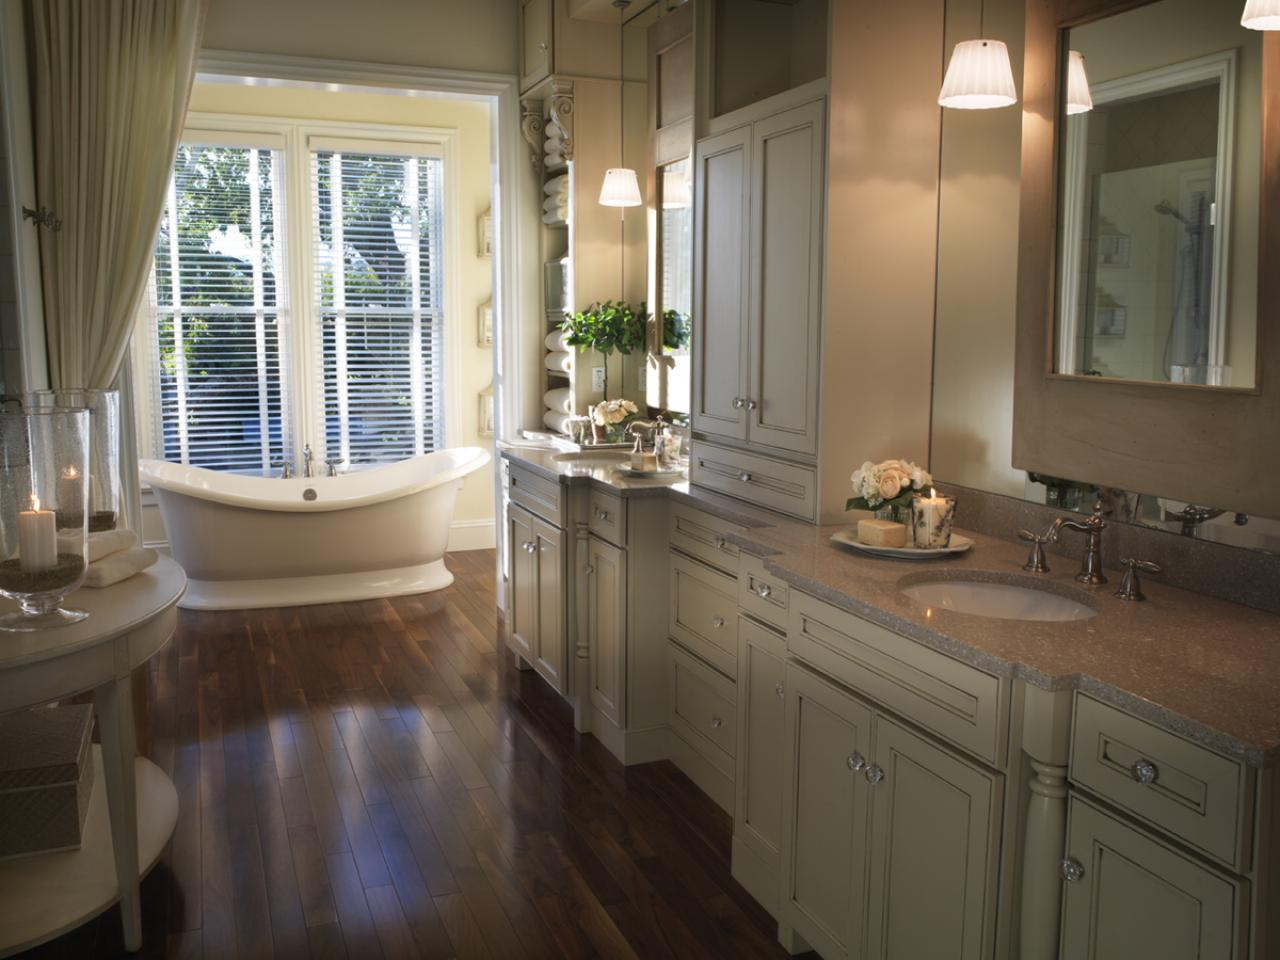 Bathroom style guide hgtv for Hgtv small bathroom design ideas